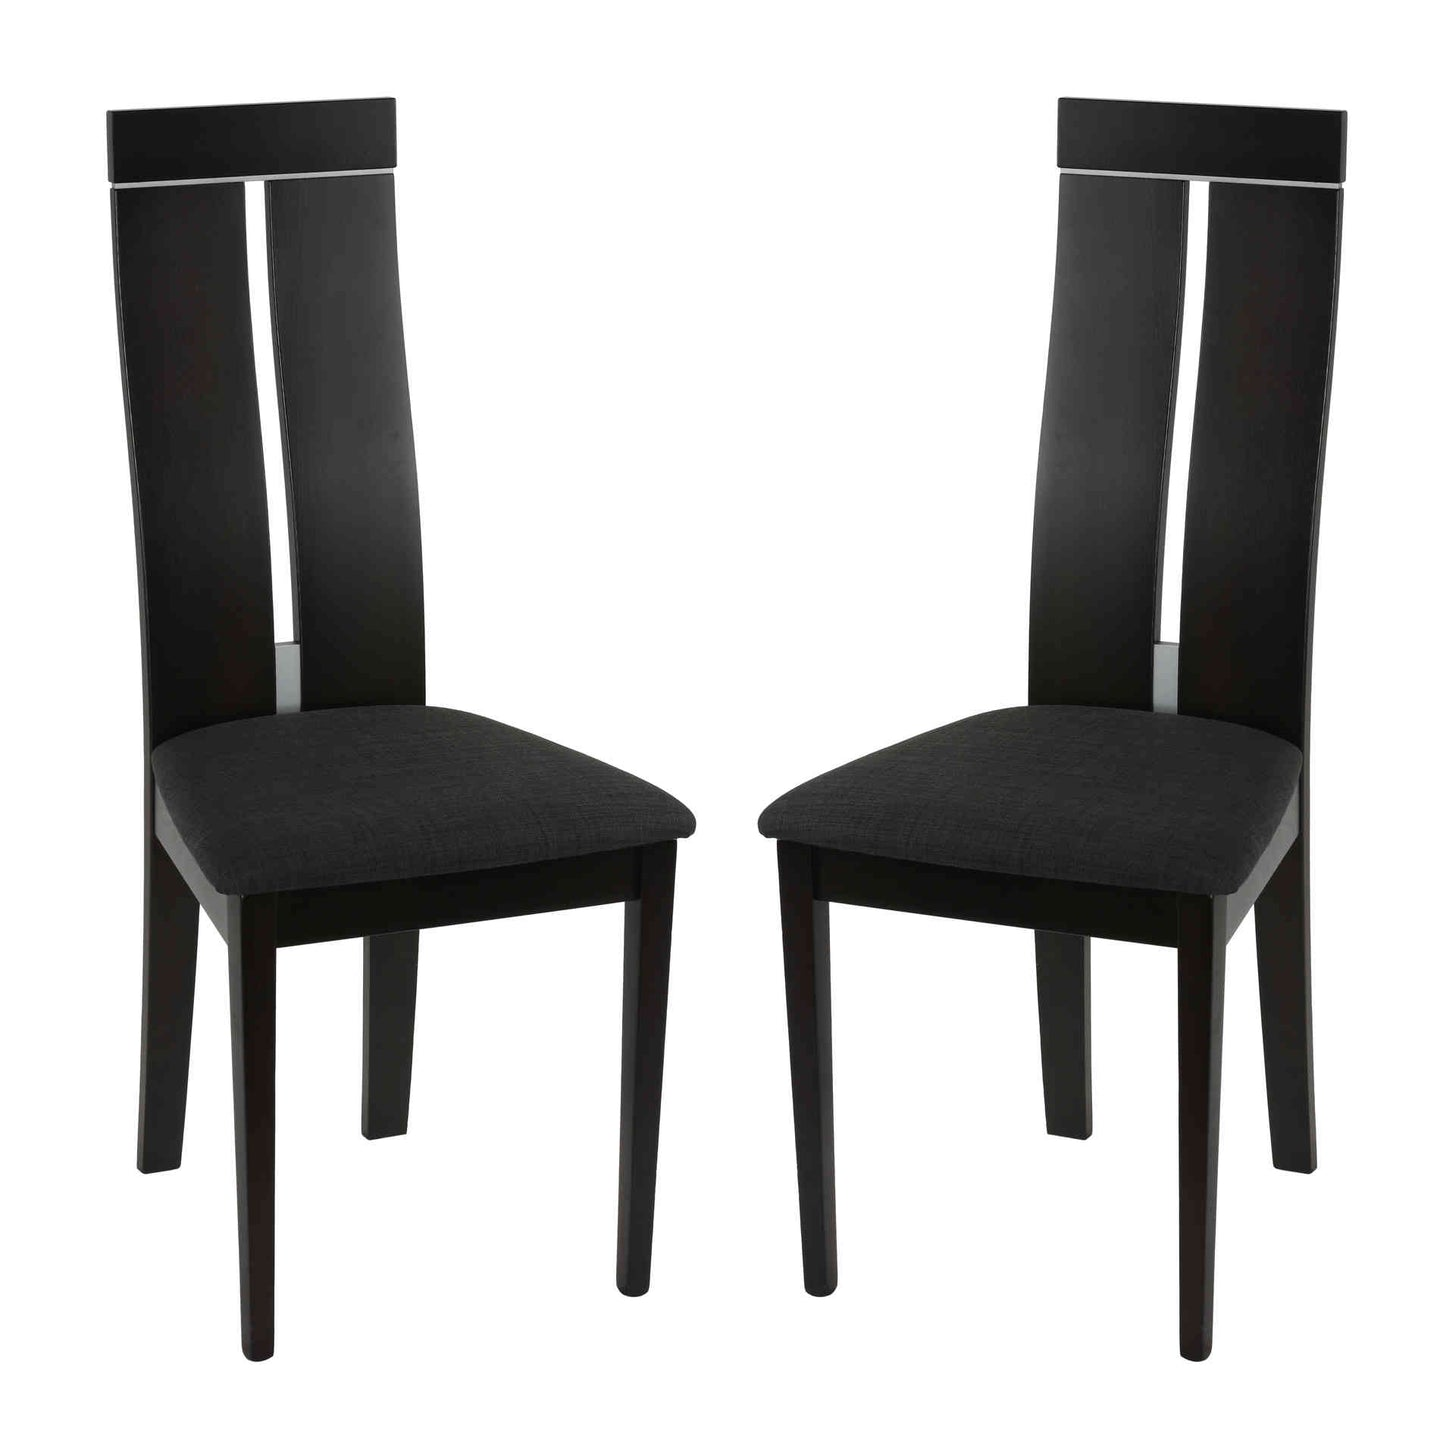 Cortesi Home Inca Dining Chair in Charcoal Fabric, Cappuccino Finish (Set of 2)